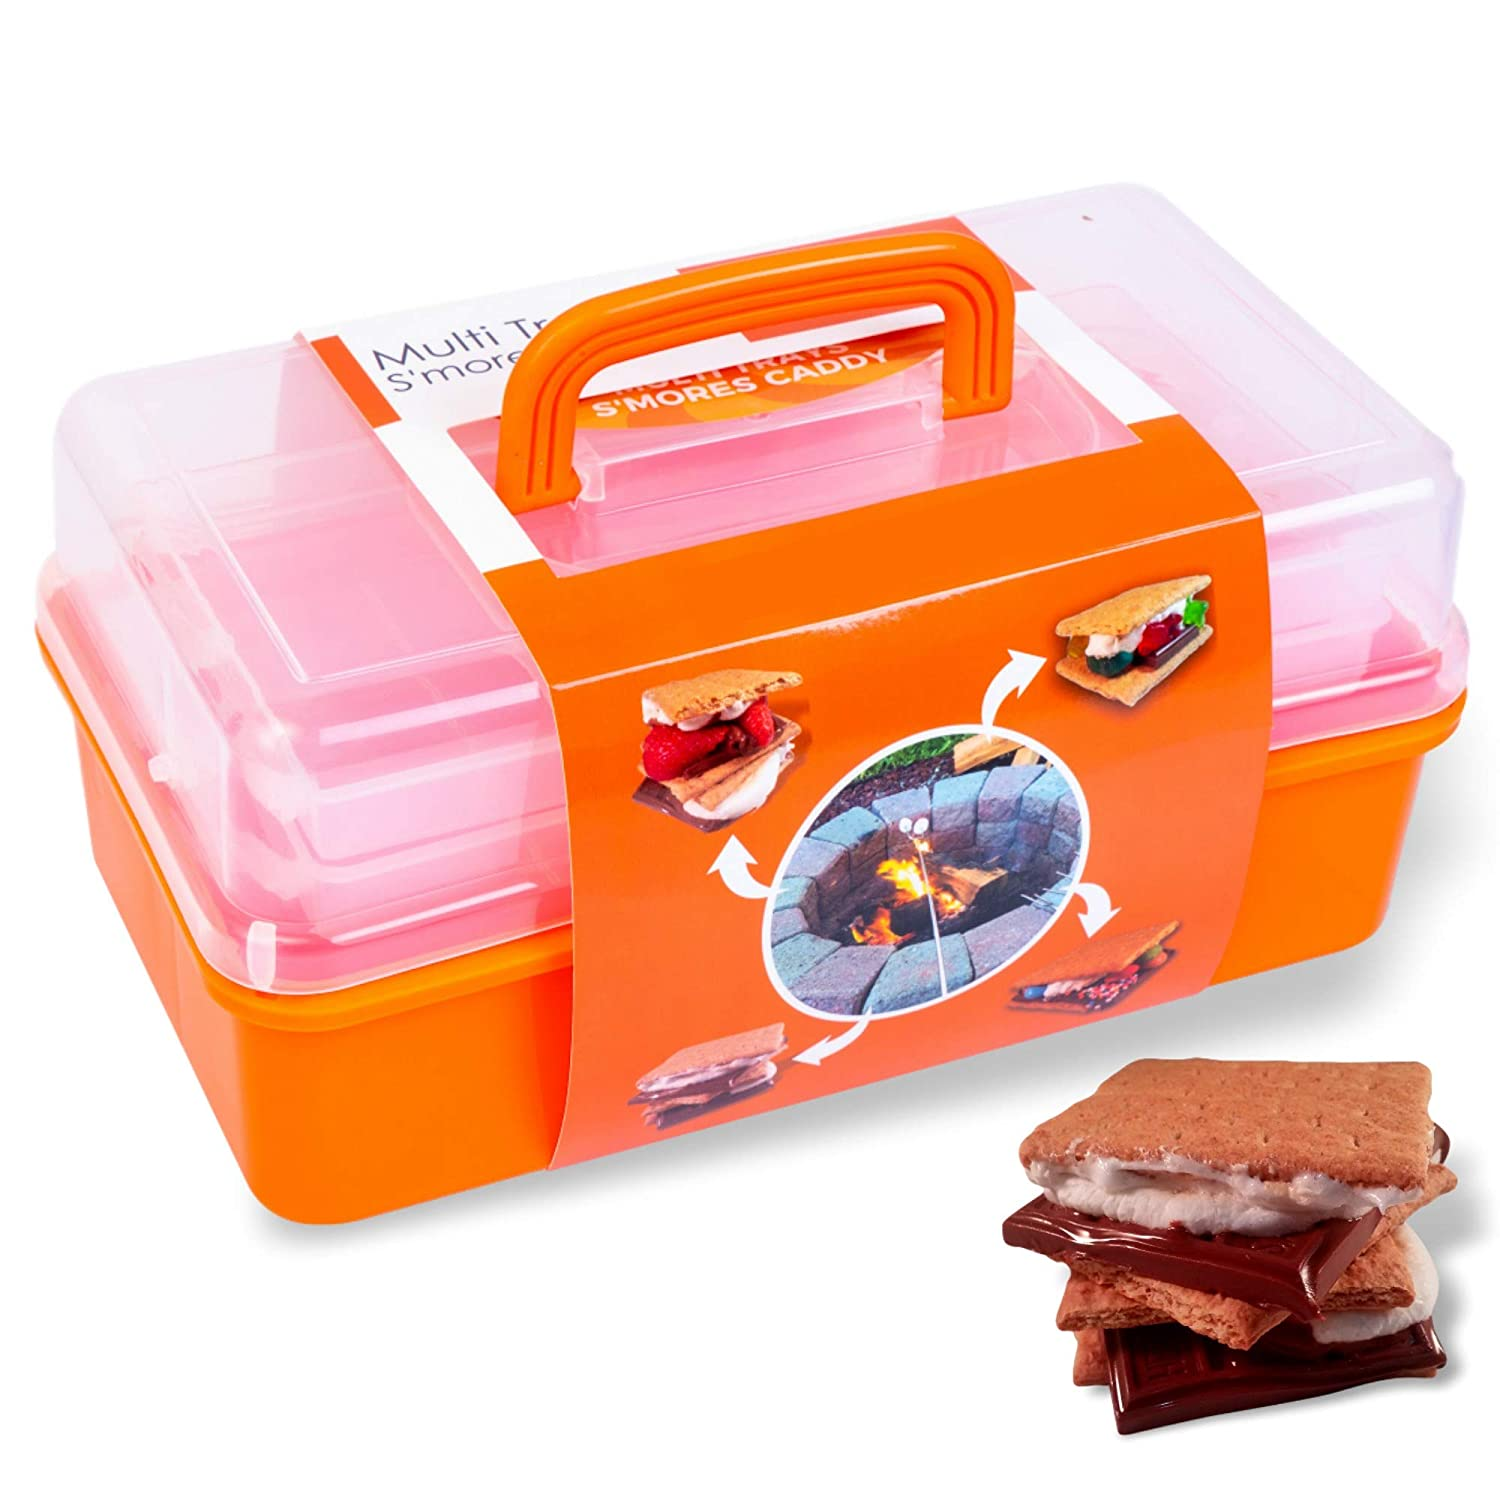 SUMPRI Smores Caddy with TWO FOLDING TRAYS -Smore Box That Keeps Your Marshmallow Roasting Sticks Crackers Chocolate Bars Organized -Fire Pit accessories Kit,Campfire Smore Skewers Storage Box Orange